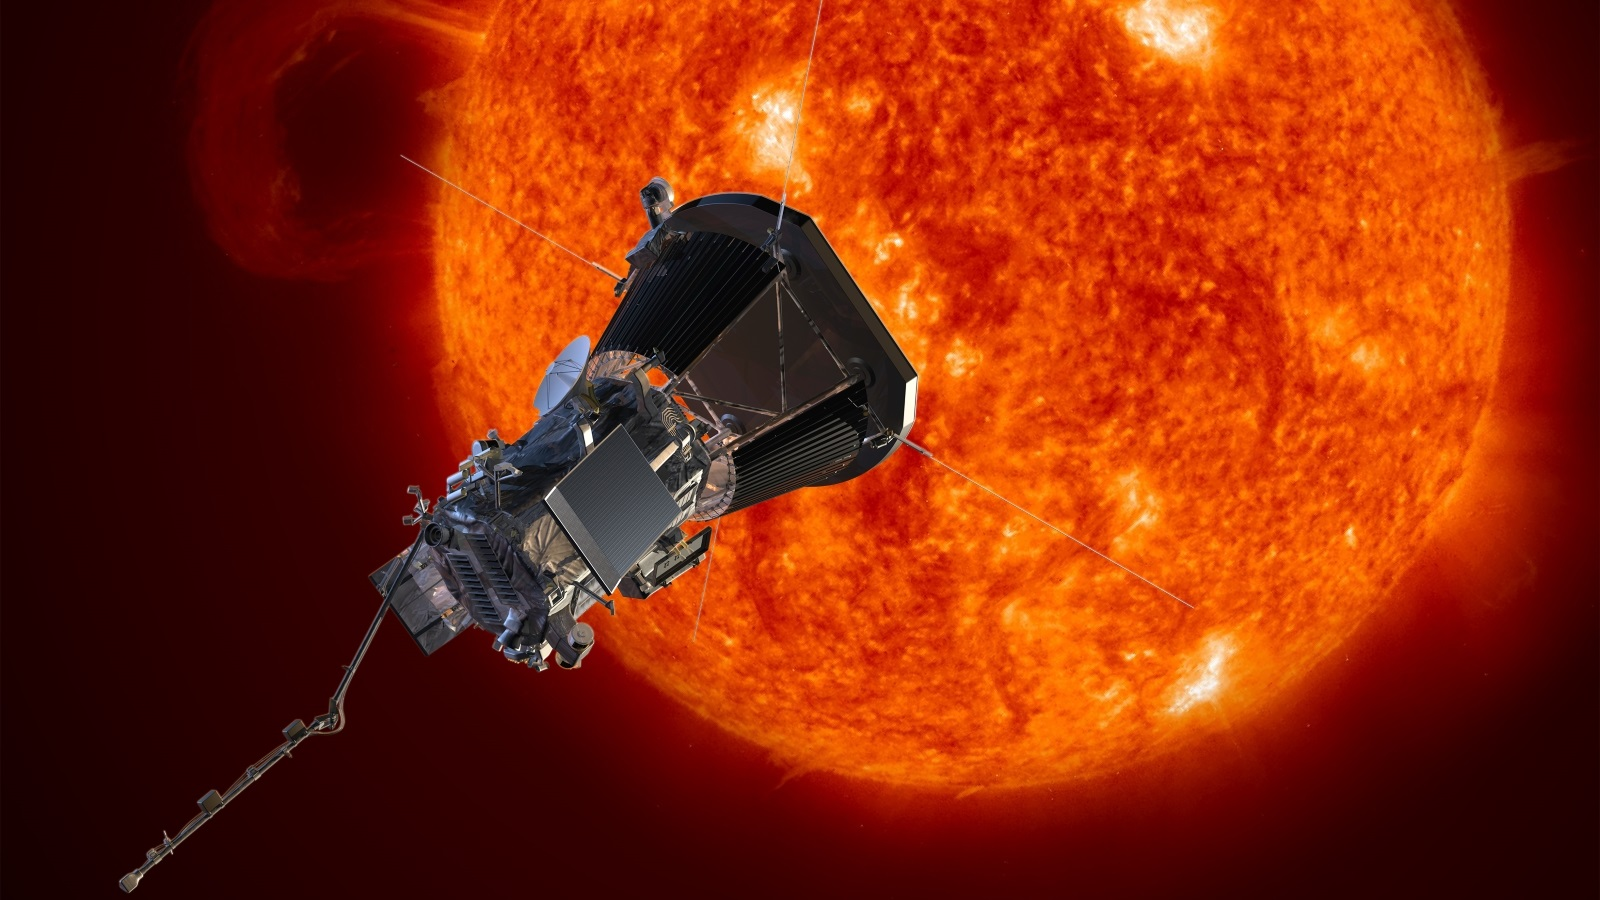 Parker Solar Probe spacecraft approaching the Sun